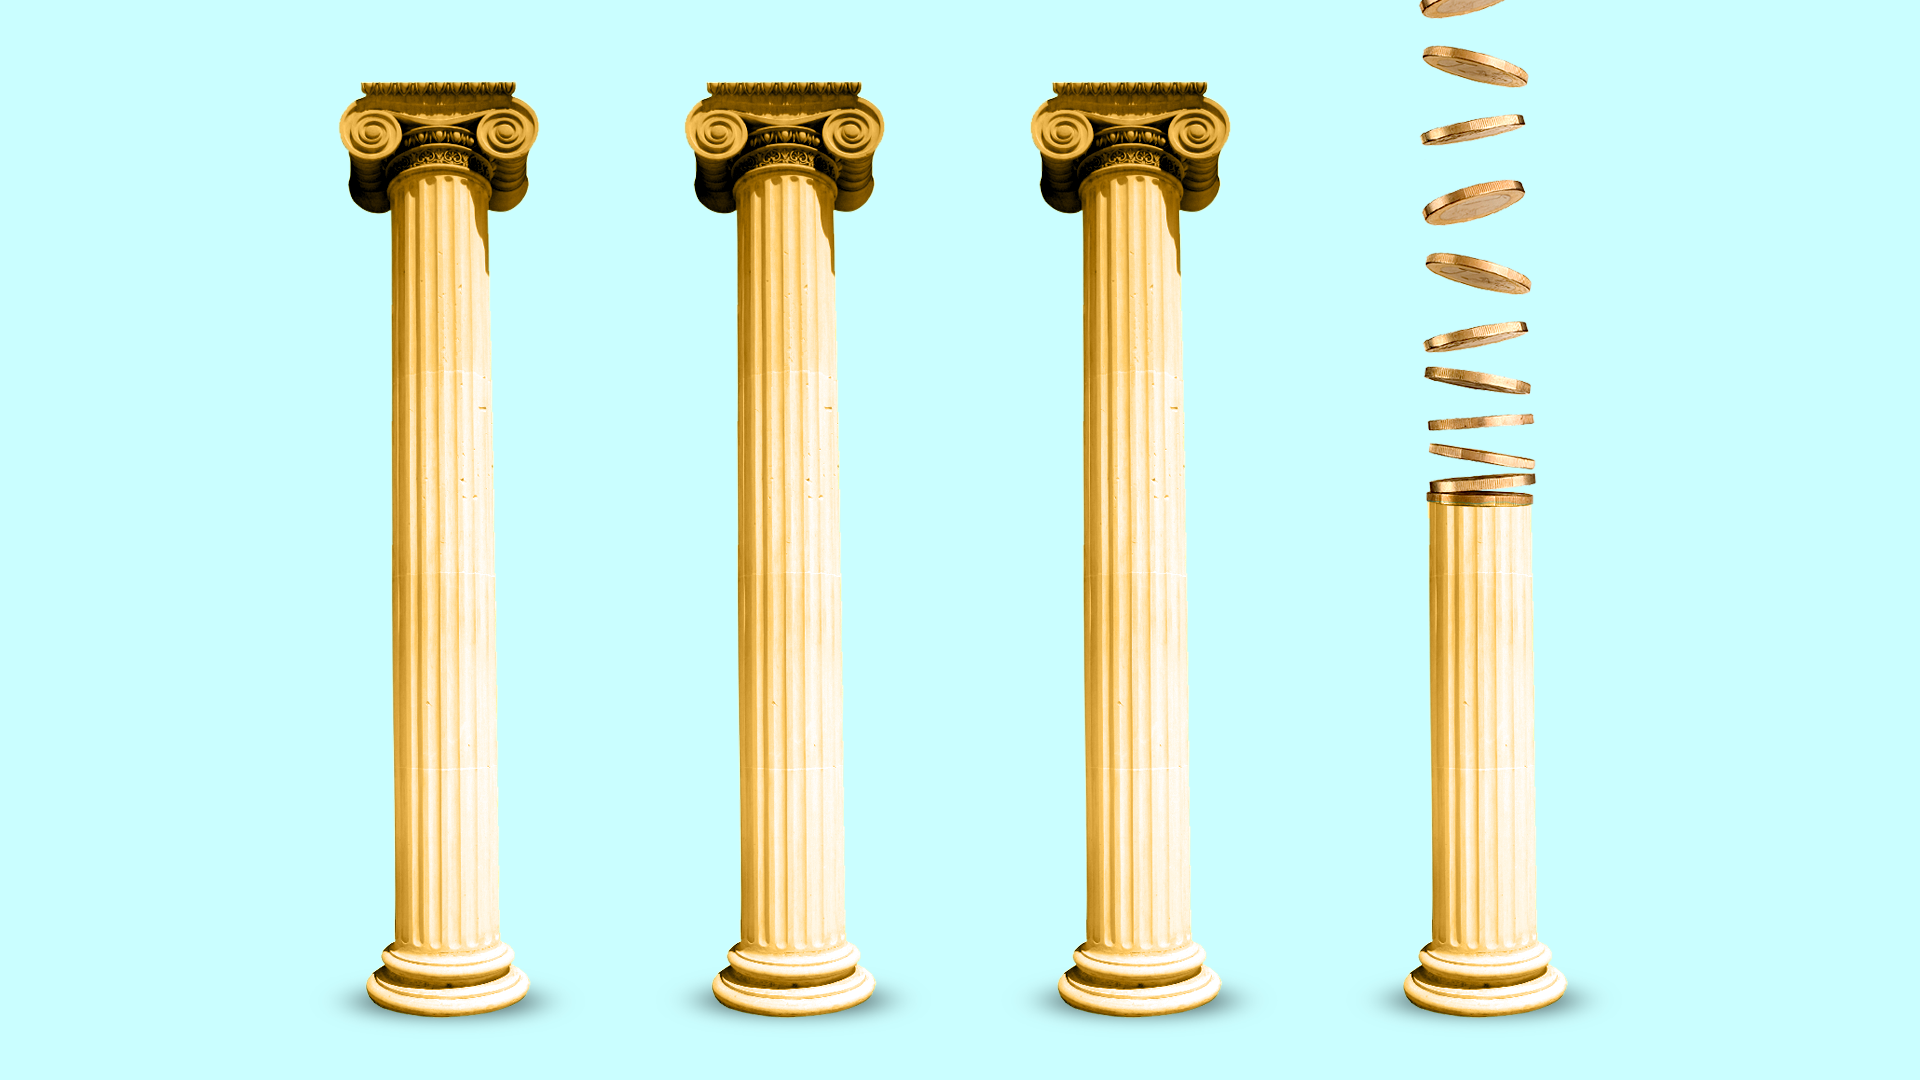 illustration of Greek pillars